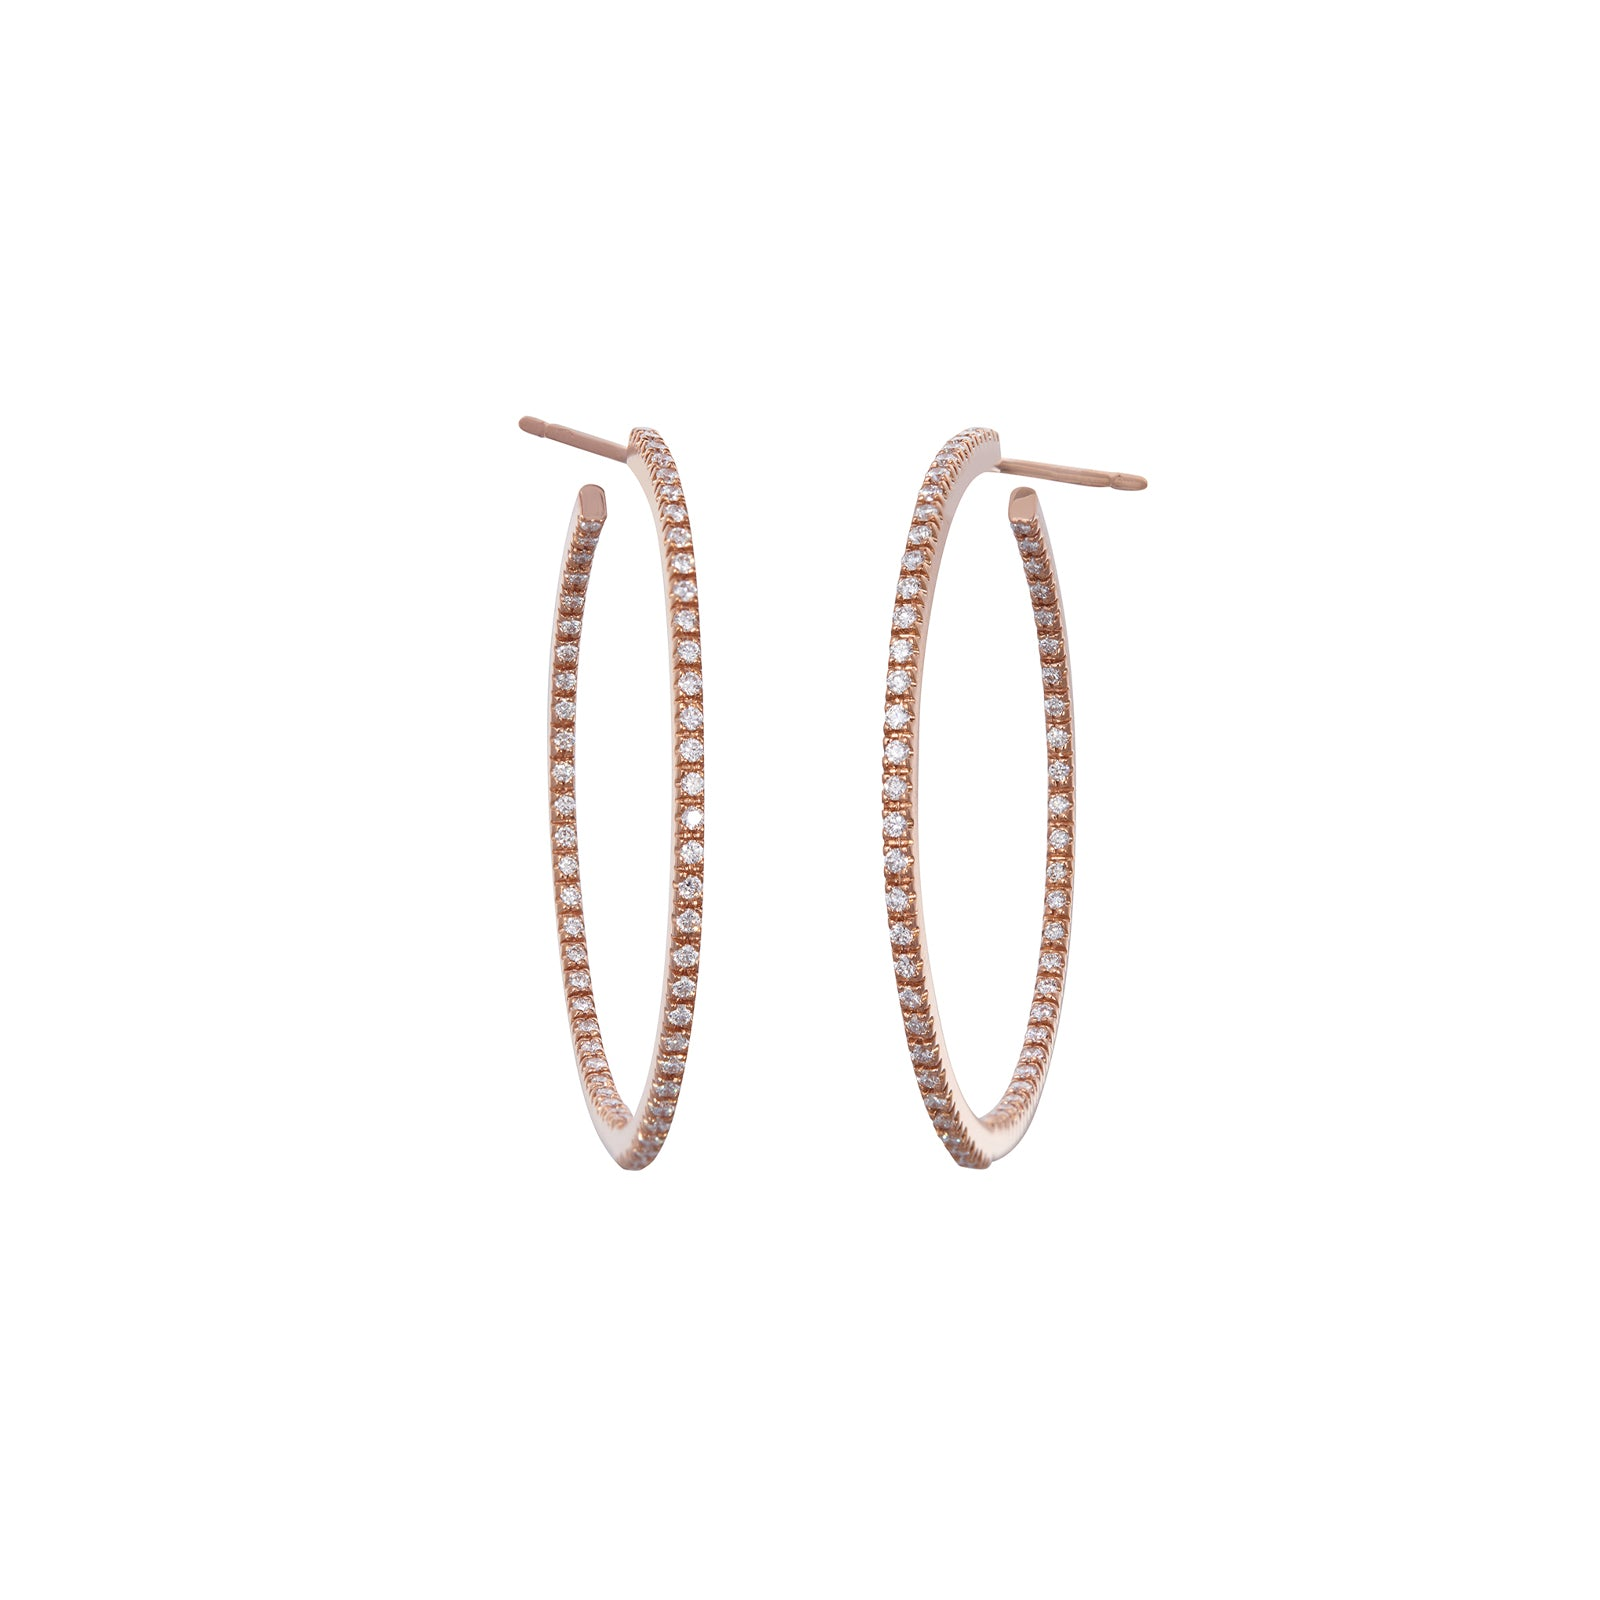 Sidney Garber Perfect Small Hoops - Rose Gold - Earrings - Broken English Jewelry